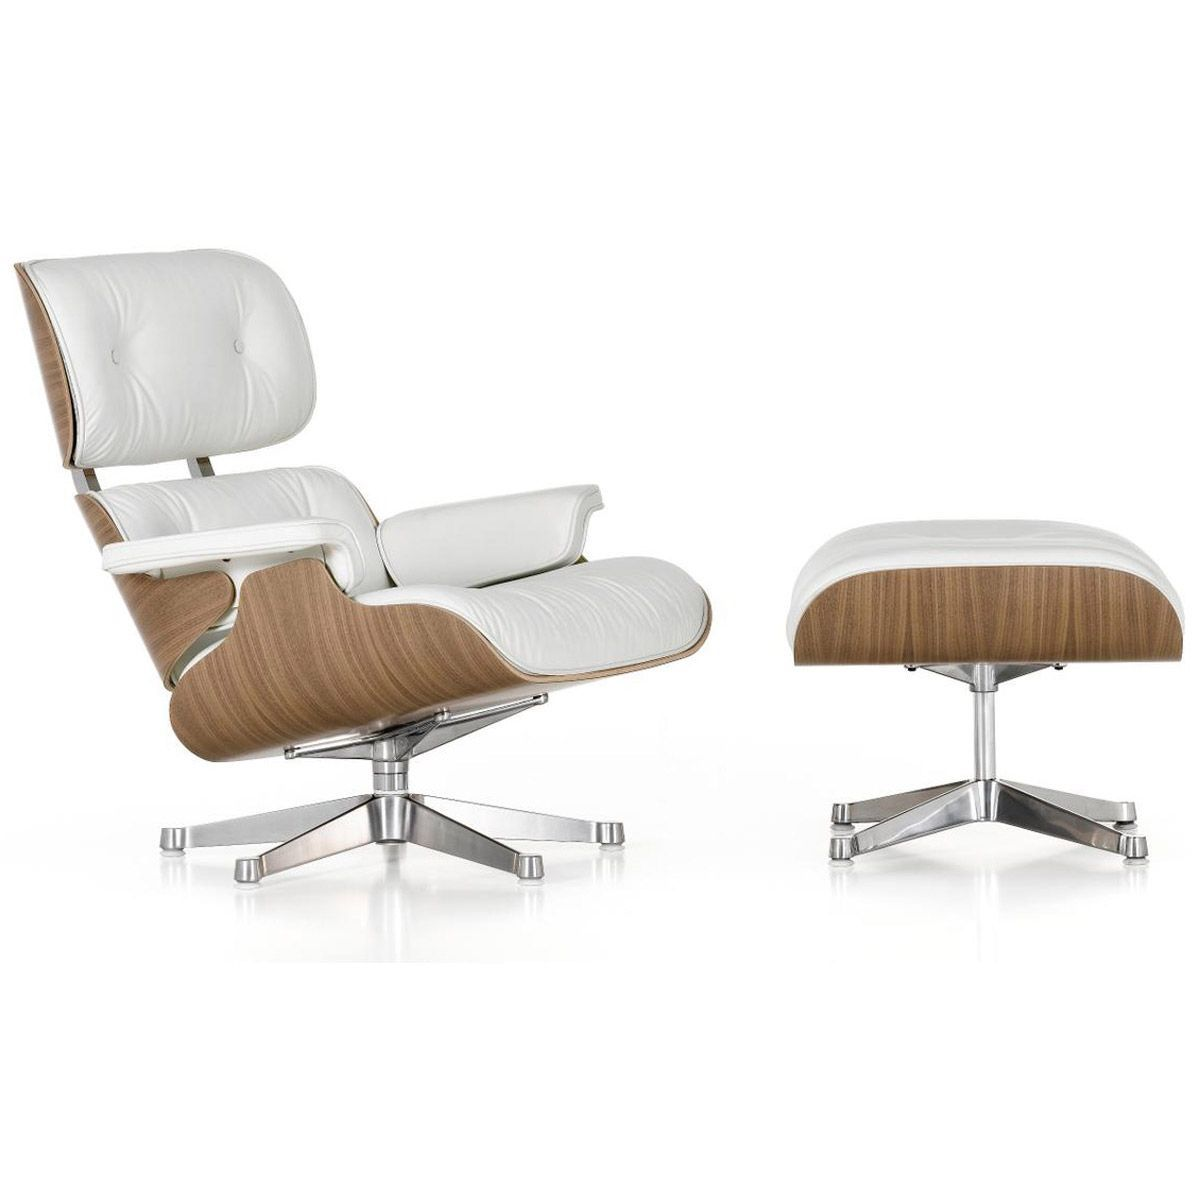 Lounge Chair and Ottoman - Vitra